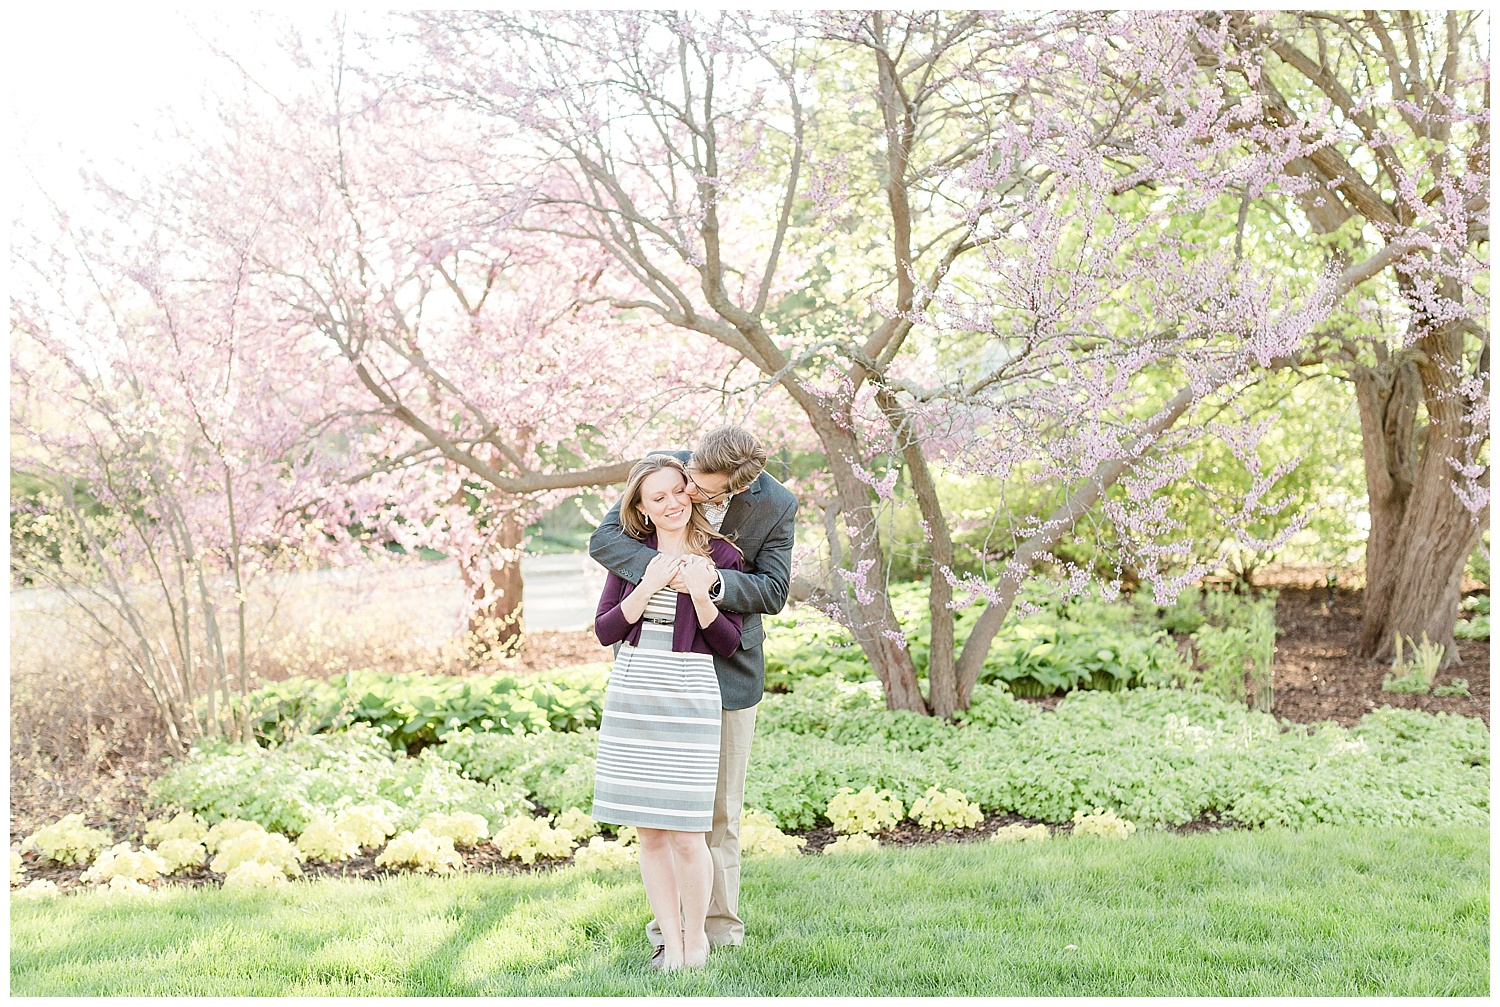 morton-arboretum-lisle-wedding-photographer-summer-engagement-session_0010.jpg